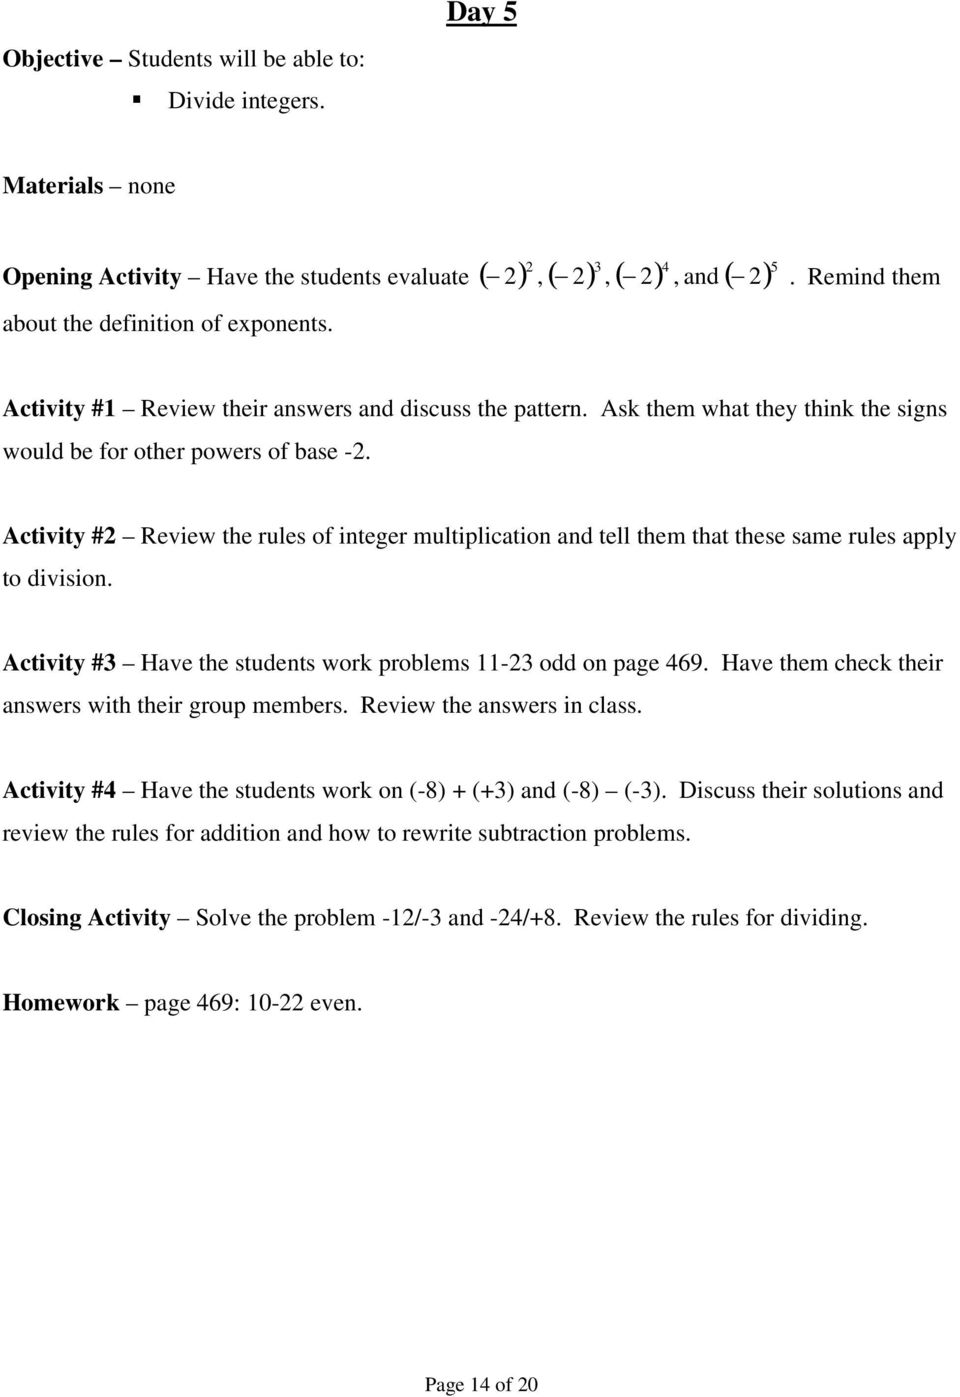 Activity #2 Review the rules of integer multiplication and tell them that these same rules apply to division. Activity #3 Have the students work problems 11-23 odd on page 469.